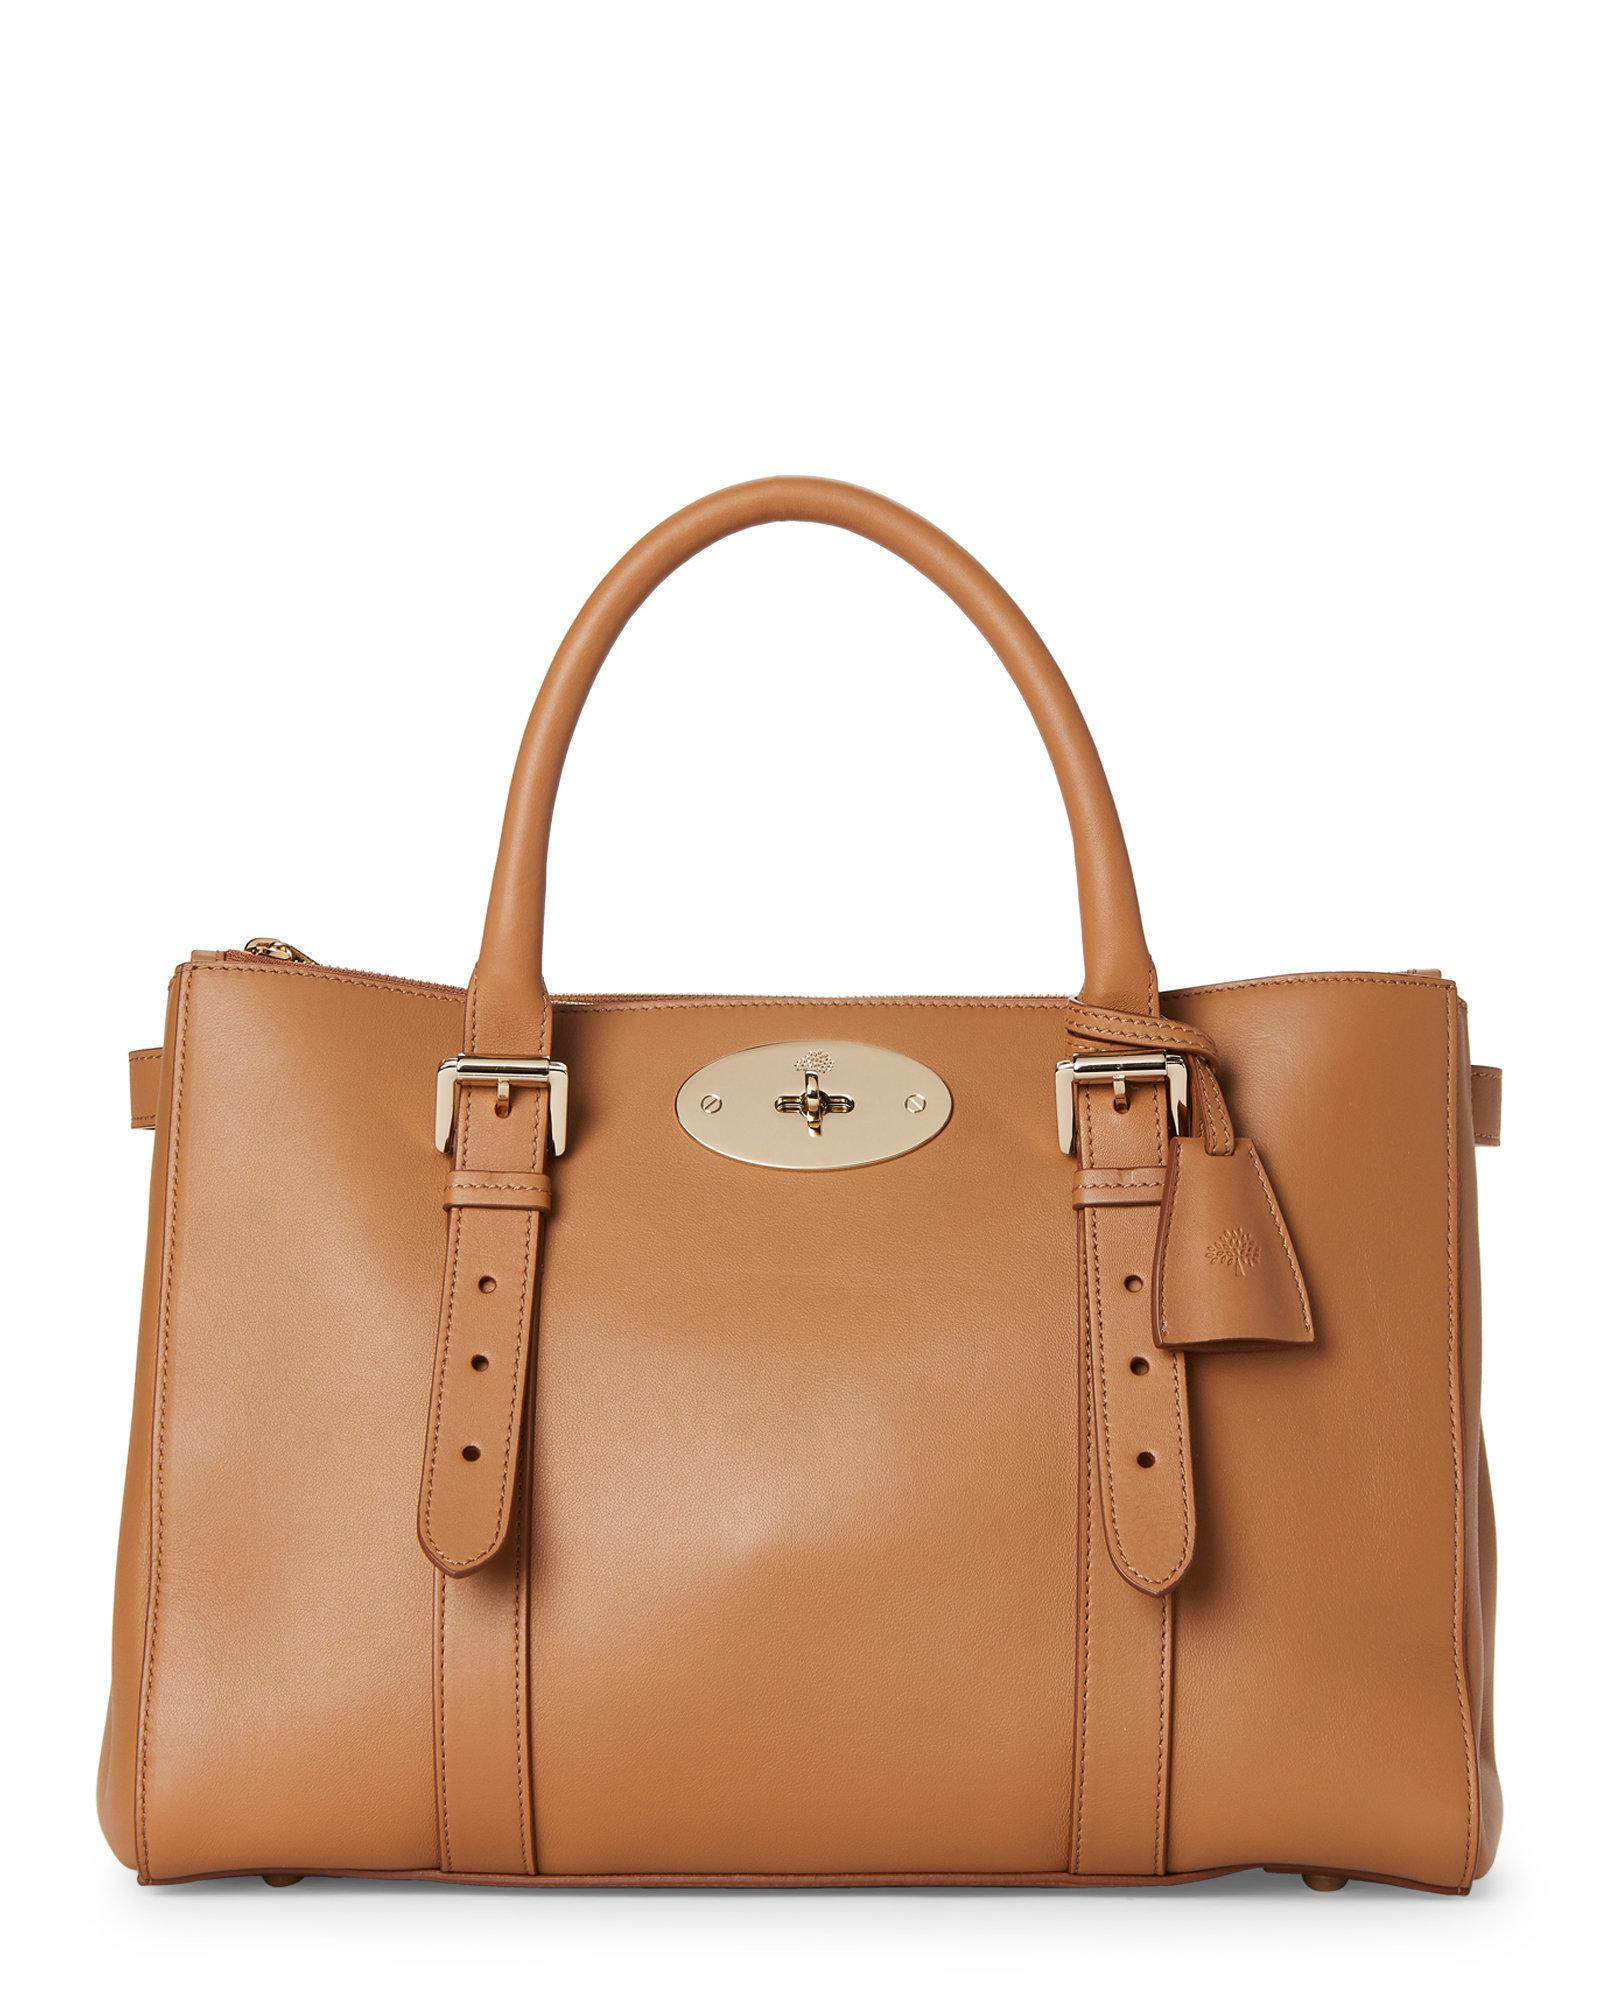 Lyst - Mulberry Deer Brown Bayswater Leather Double-zip Tote in Brown 0121c9b8fc9db